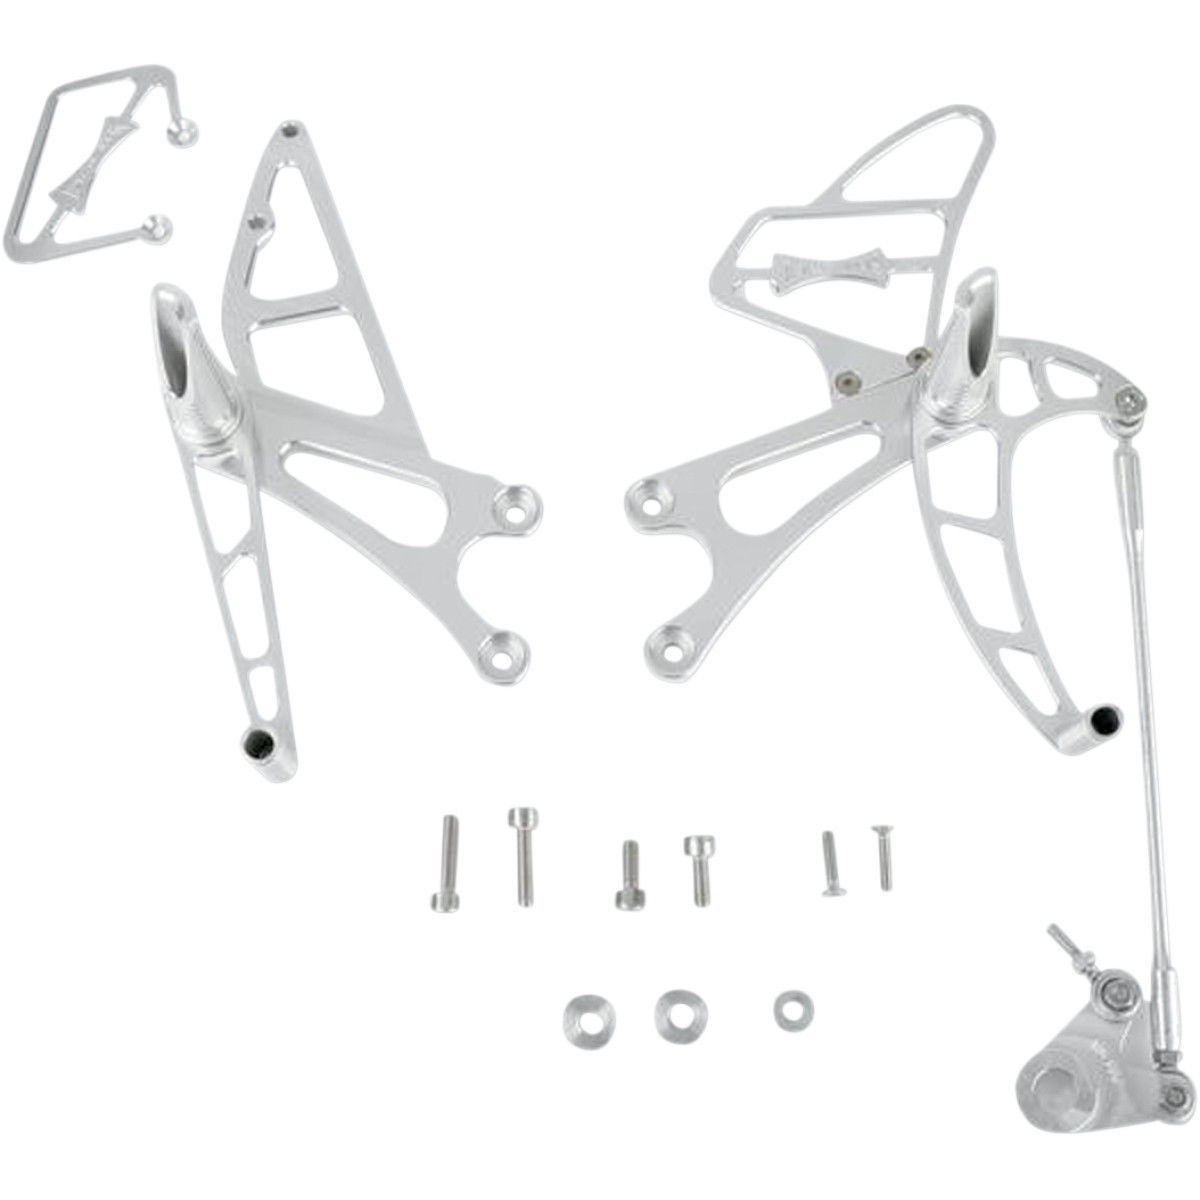 Rear Sets RS-380 Kit/Parts